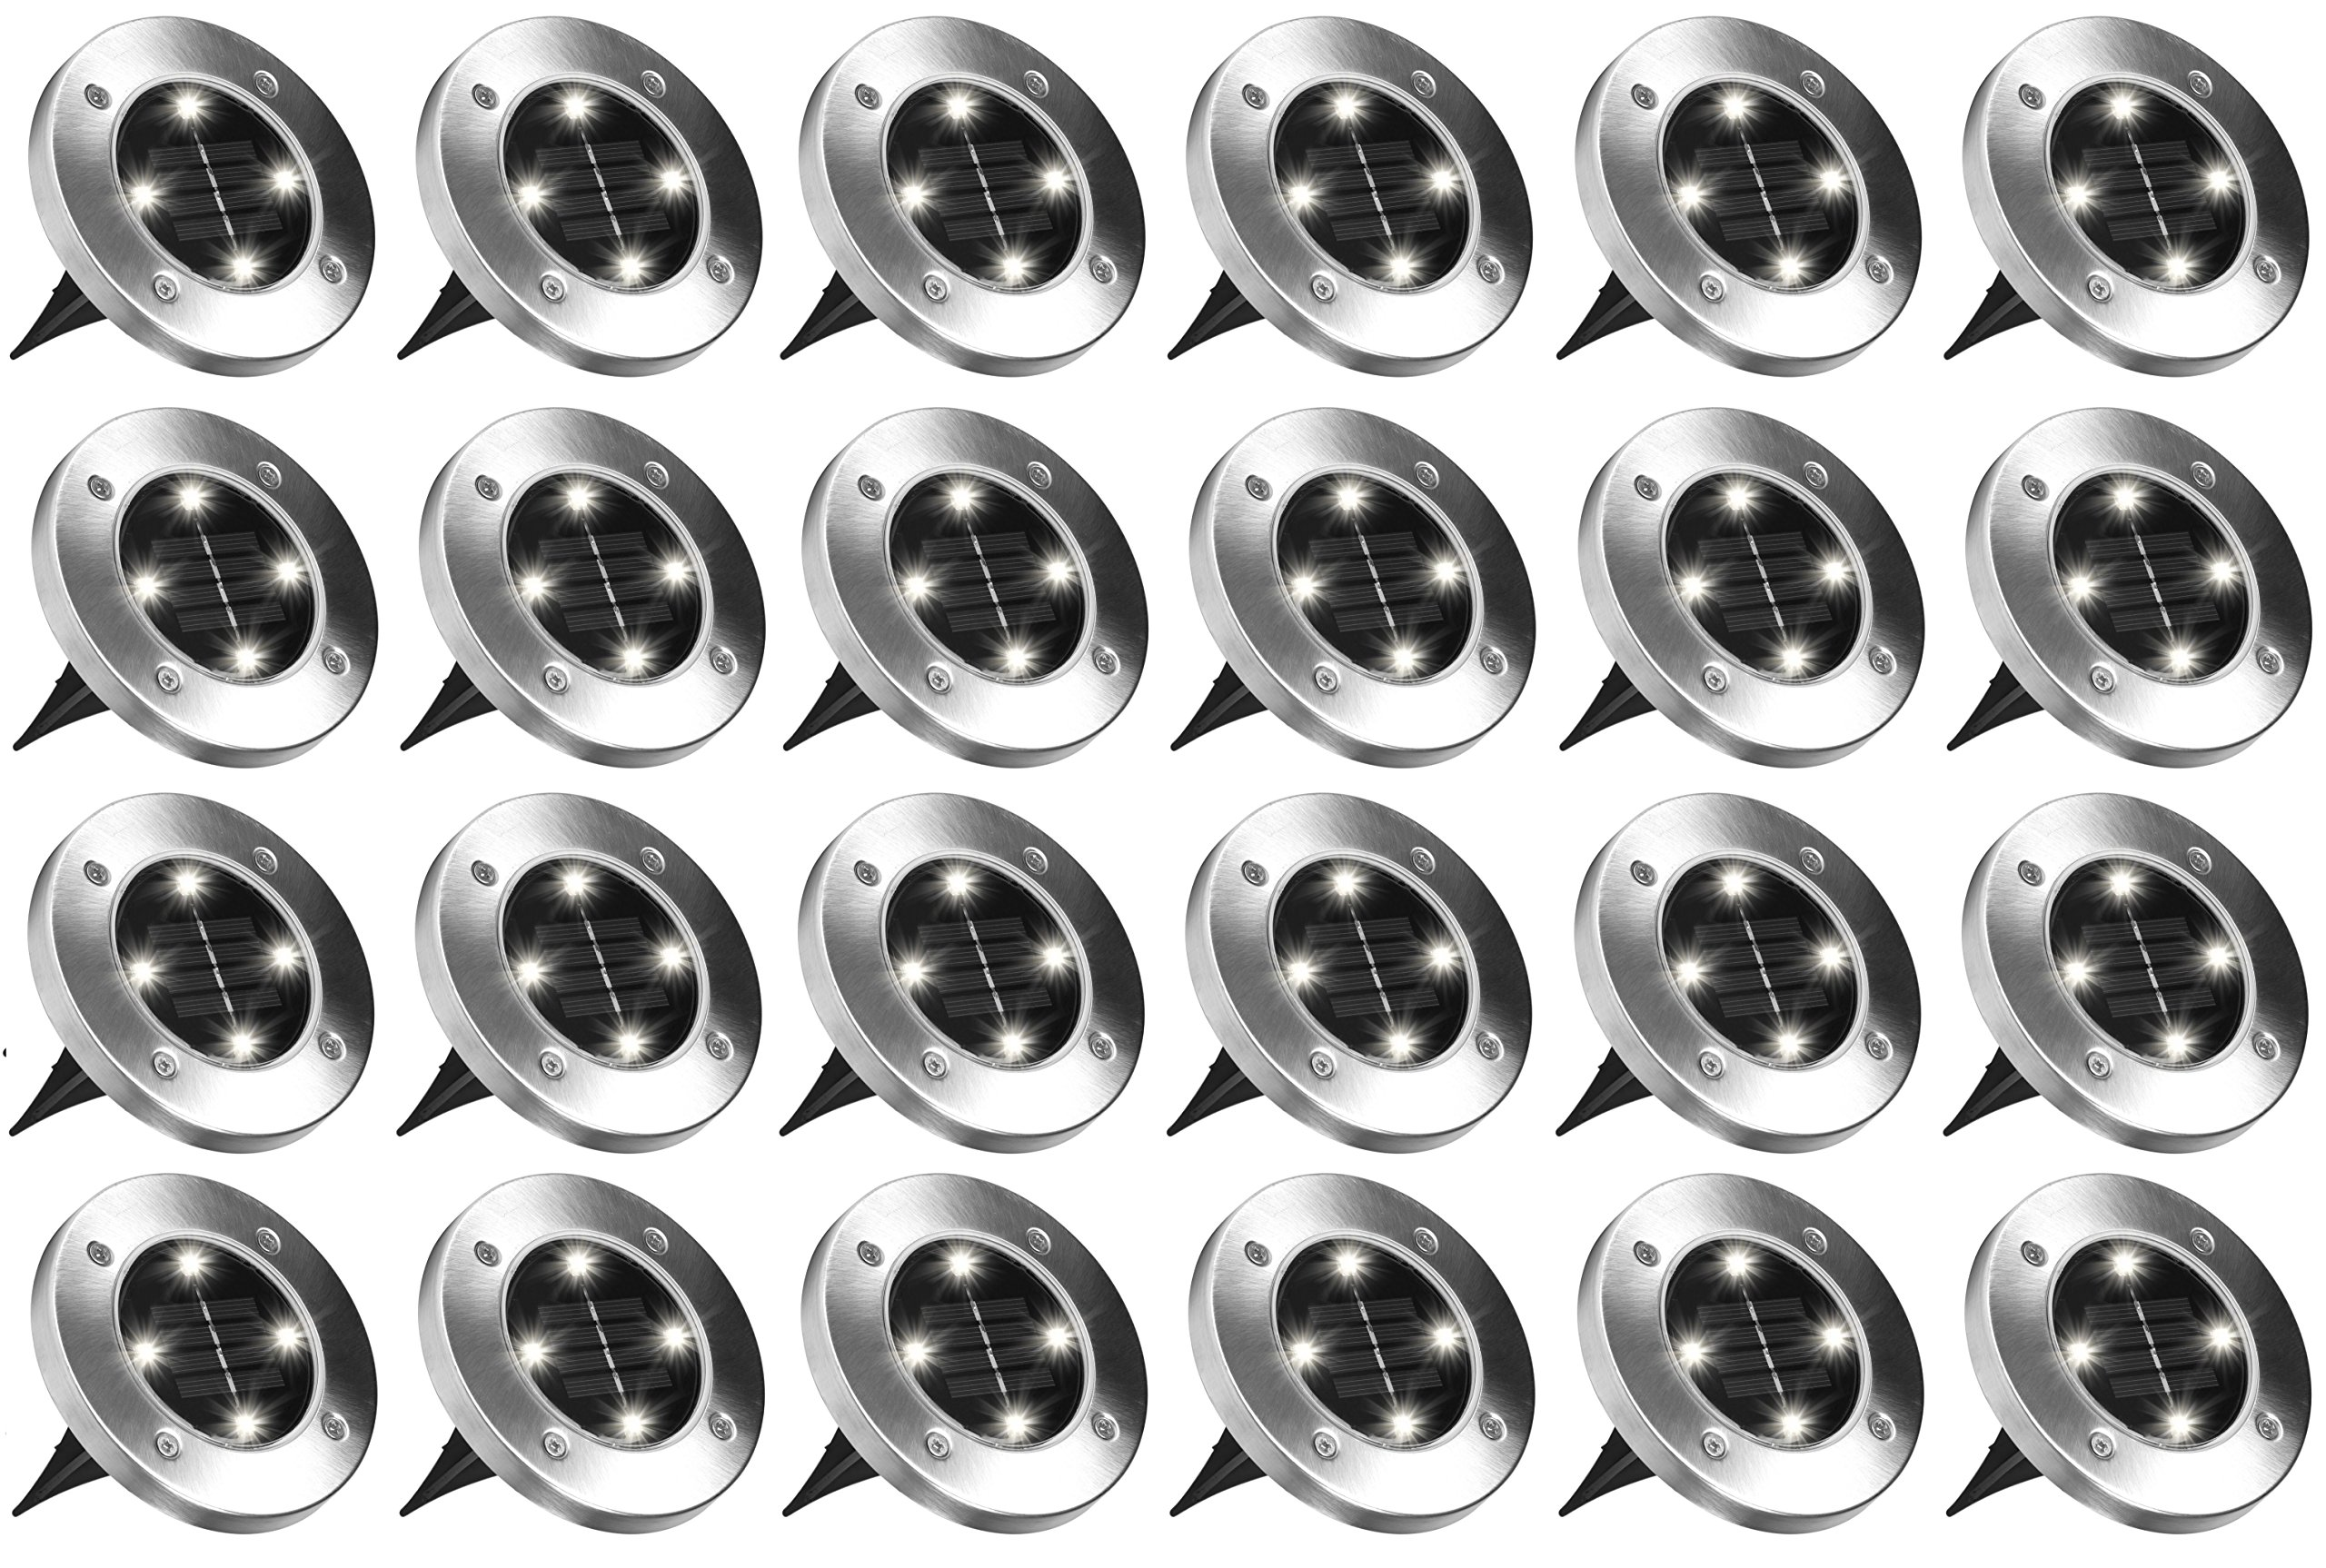 BH Disk Lights 4-LED Solar-Powered Auto On/Off Outdoor Lighting As Seen On TV (24, Regular)